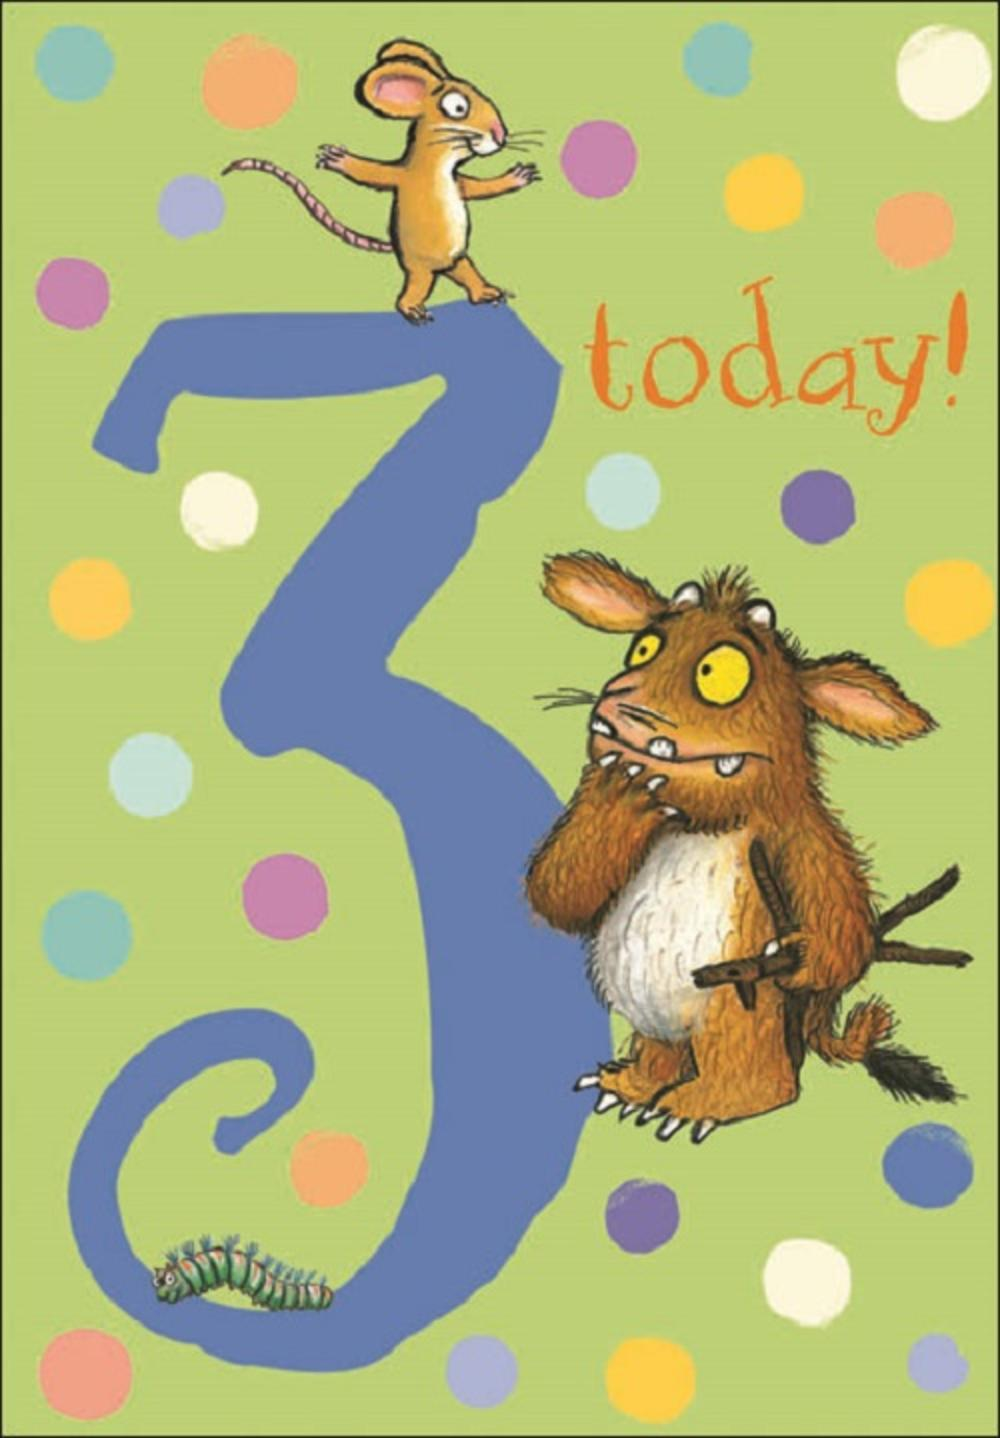 Gruffalo 3 Today 3rd Birthday Greeting Card | Cards | Love ...